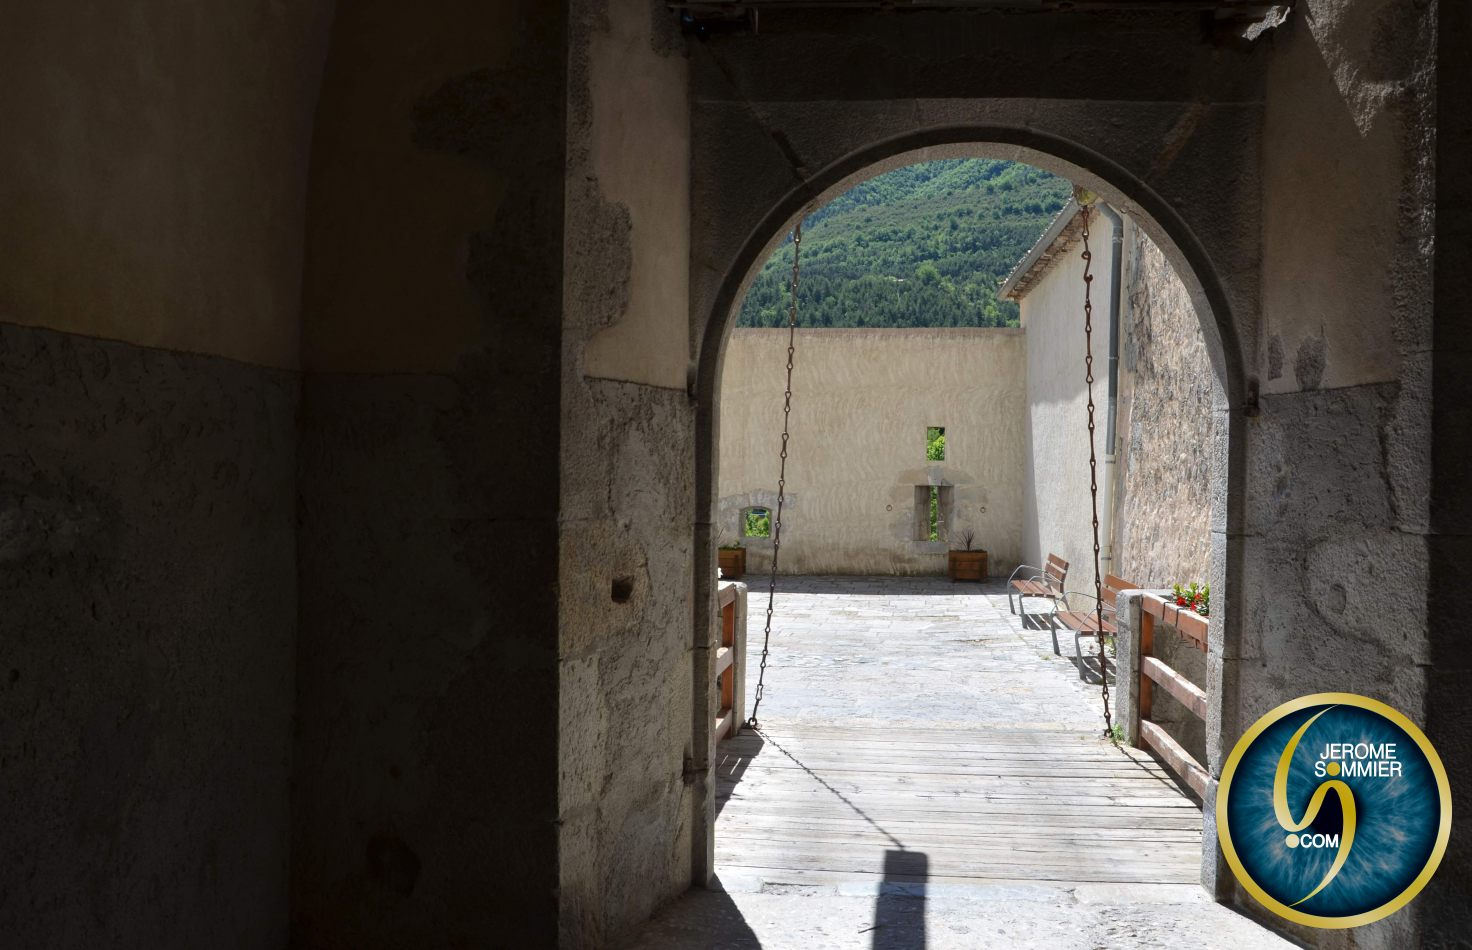 Jerome Sommier Photos - Photo & Graphism: Entrevaux